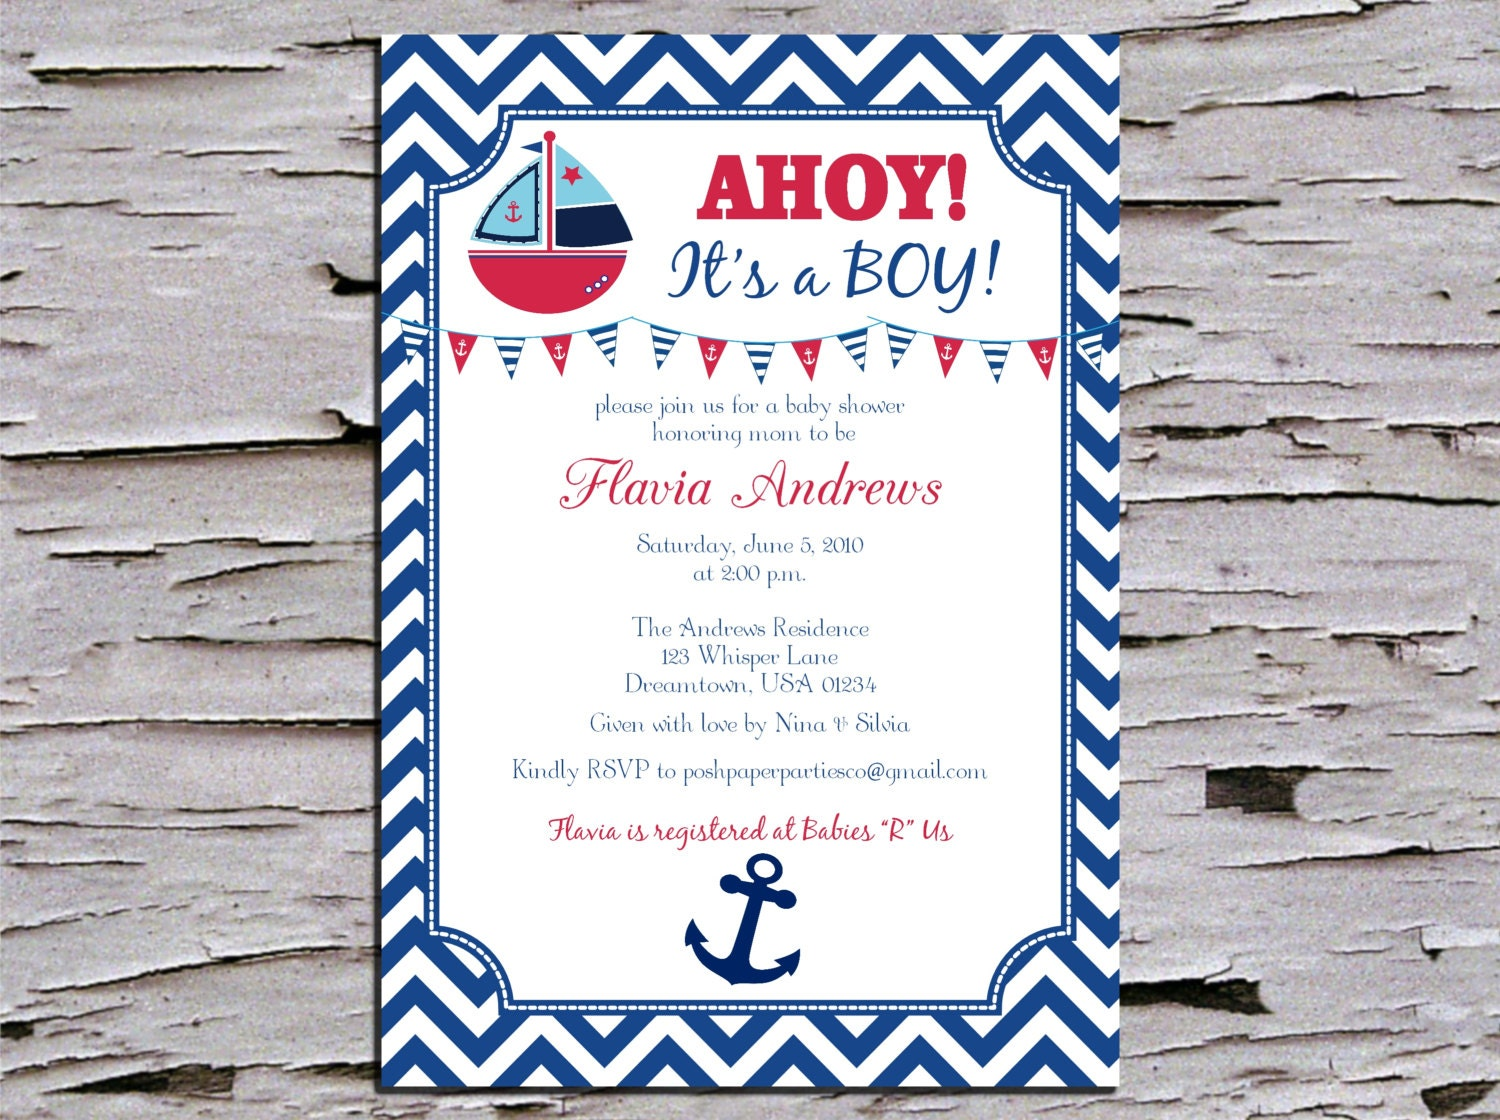 ahoy its a boy nautical baby shower invitation red white and blue